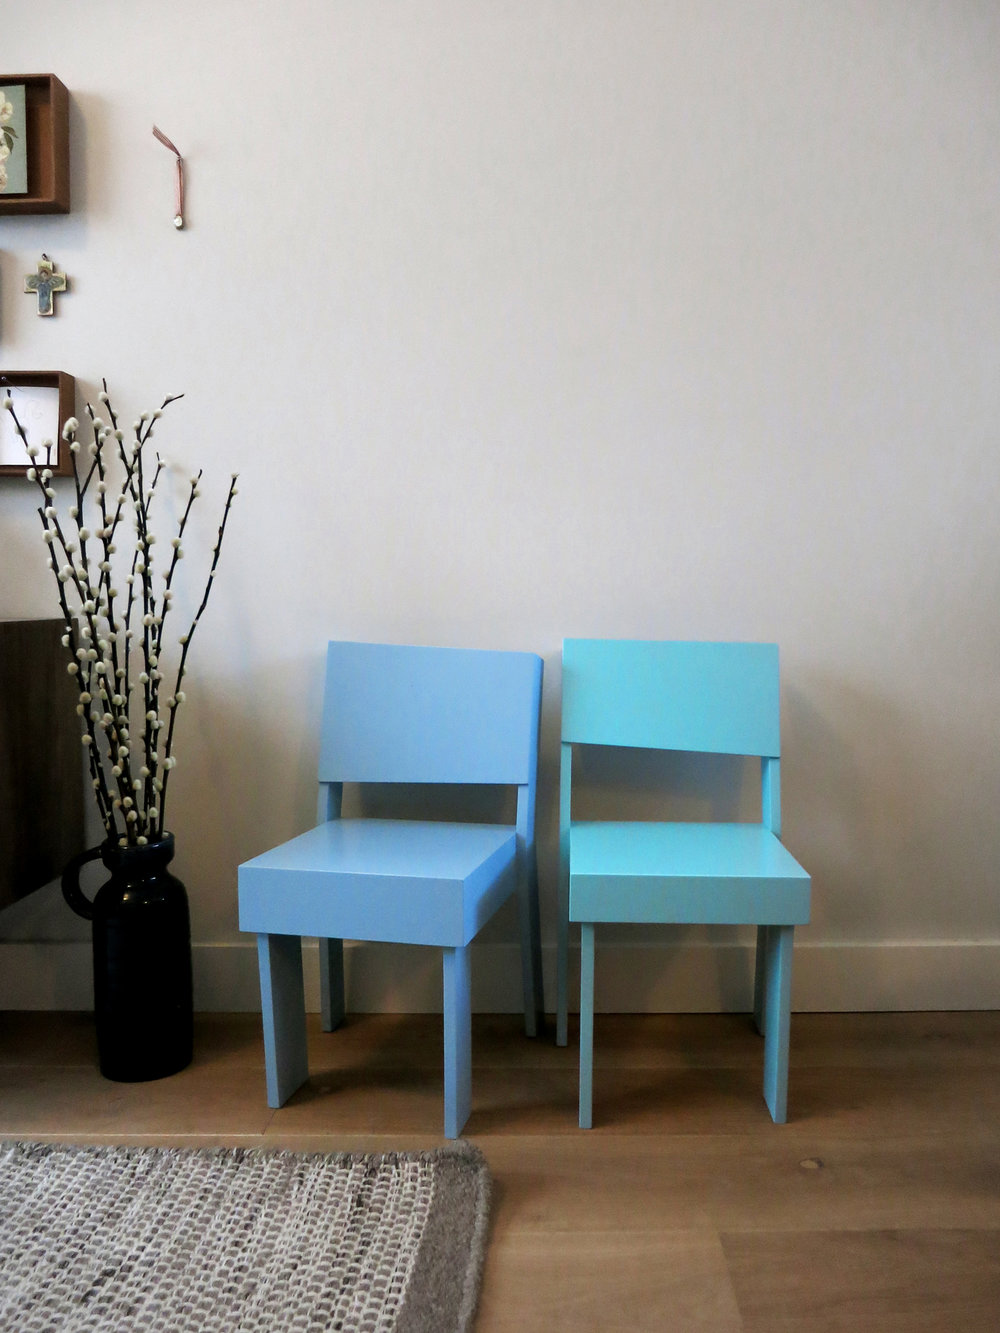 tom frencken FURNITURE childrens chairs.jpg